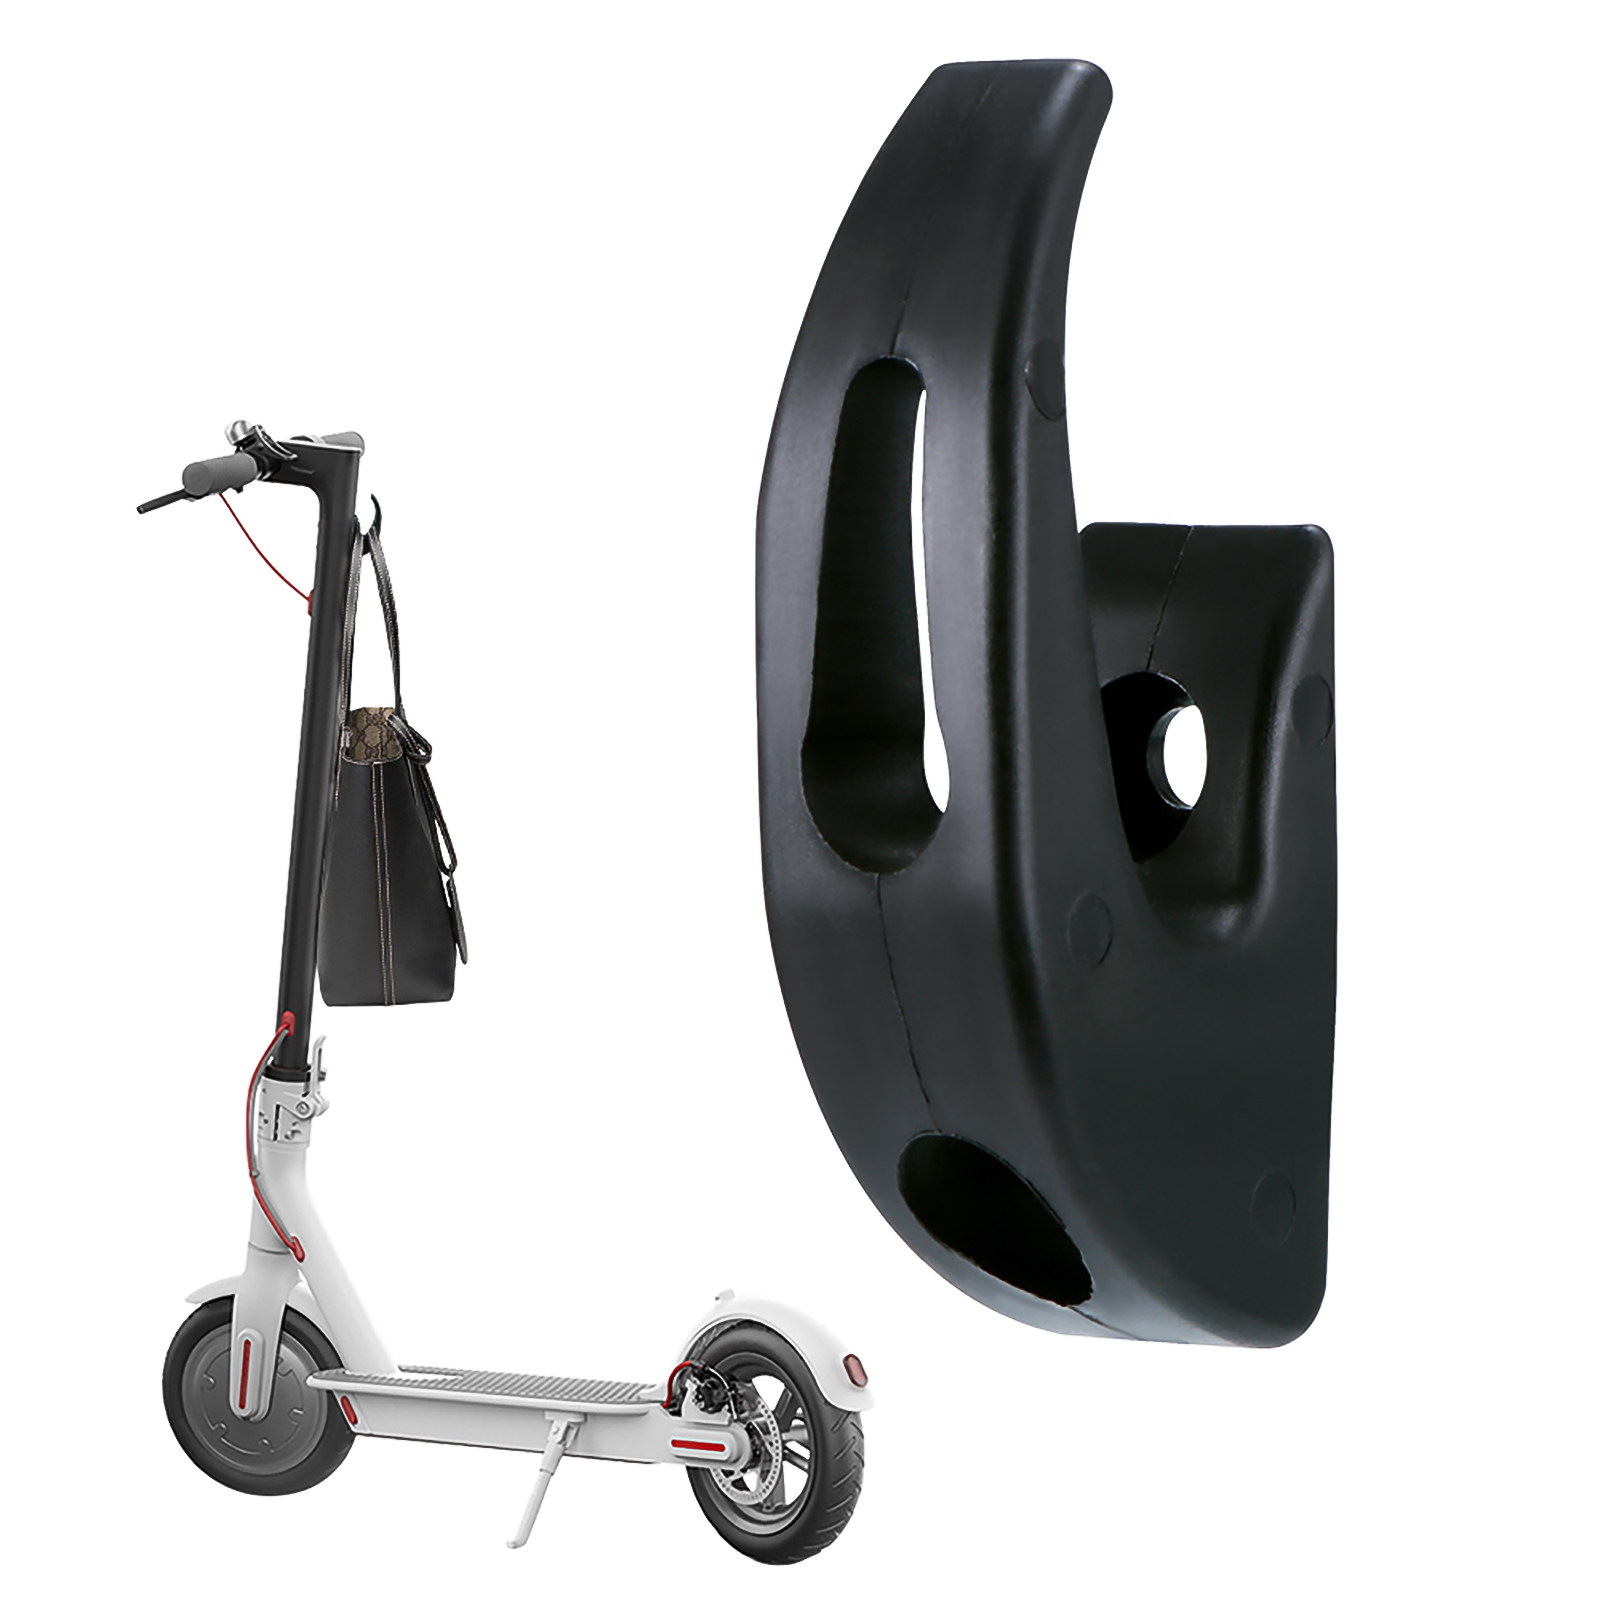 Front Hook Hanger Electric Scooter Storage Tools Skateboard Kid Scooter Grip Handle Hook Part For Xiaomi M365/M187/Pro Scooter